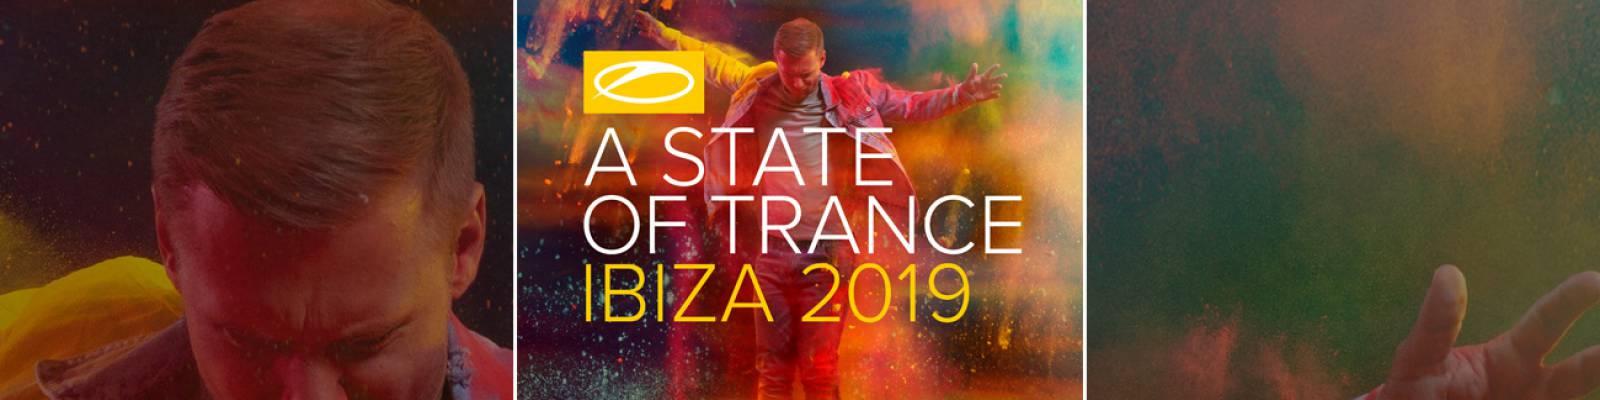 OUT NOW: A State Of Trance Ibiza 2019 (Mixed by Armin van Buuren)